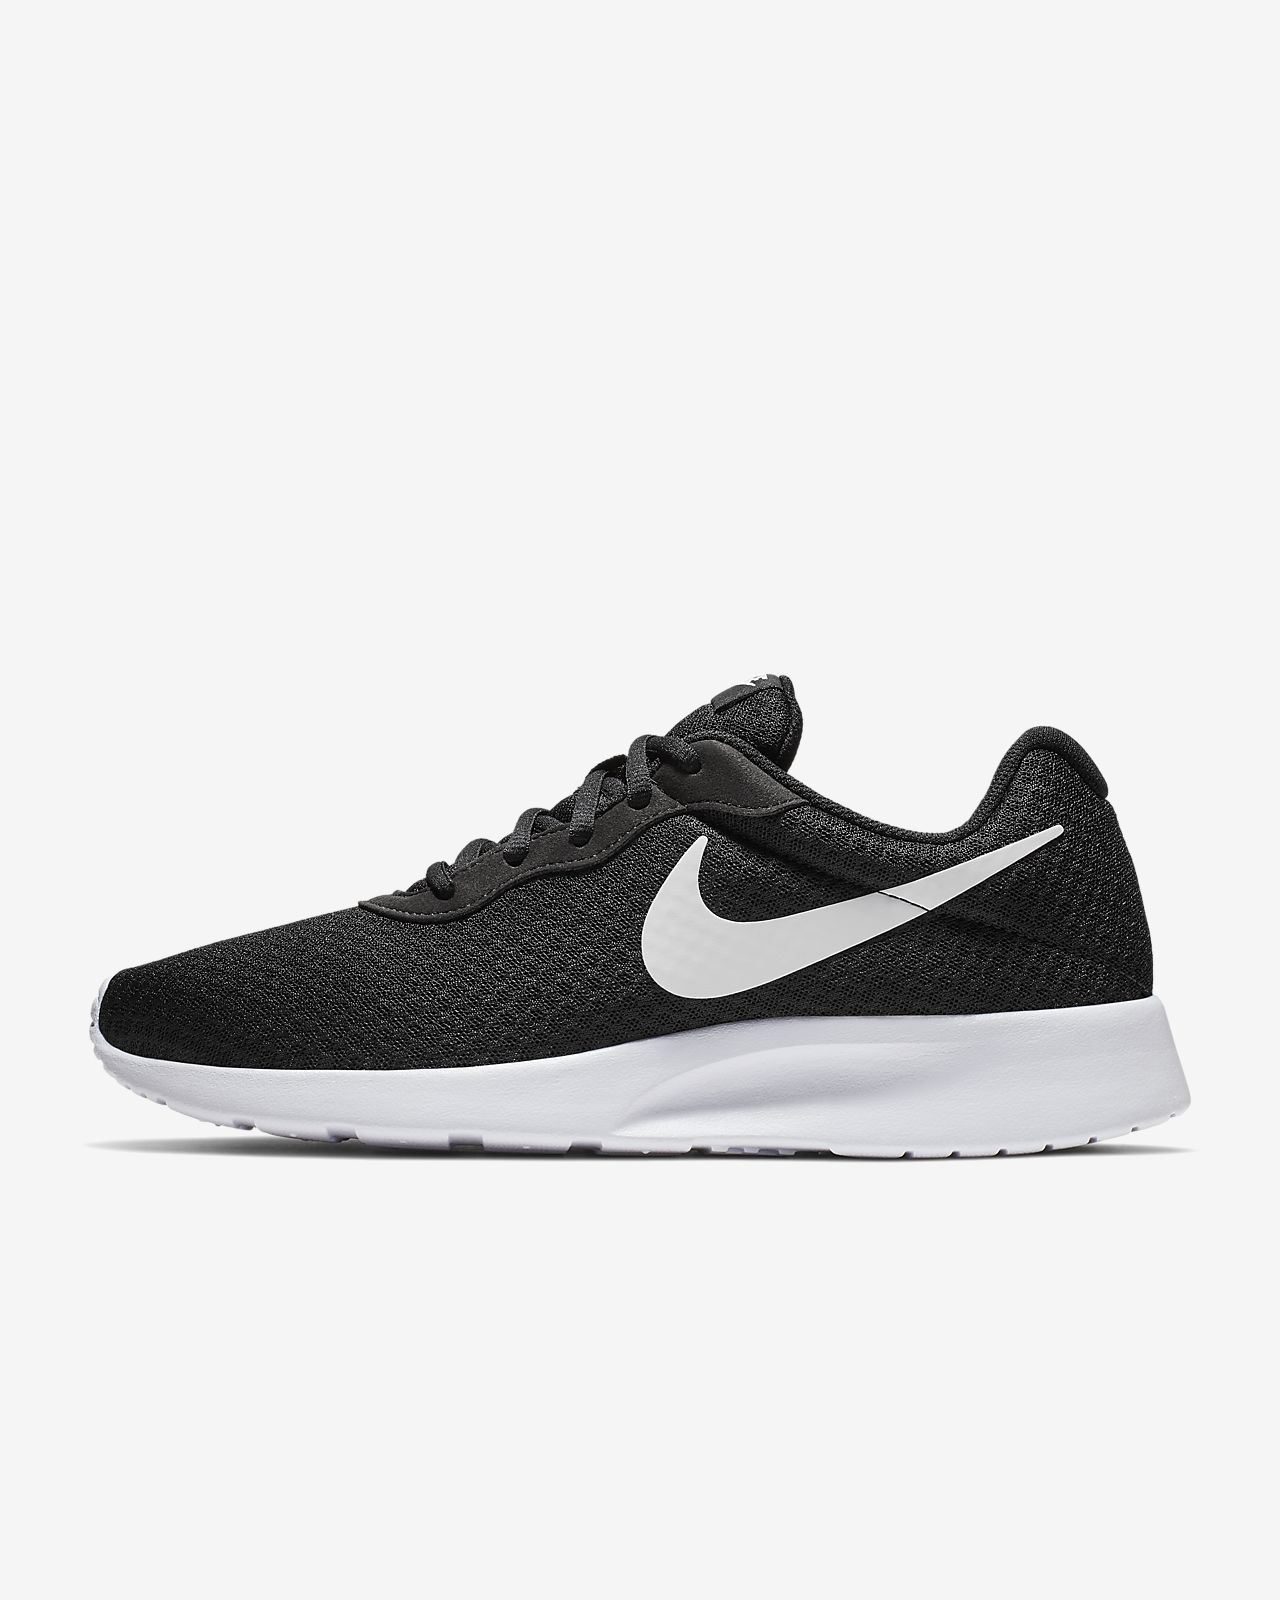 quality design 2ef4a c0f59 ... Chaussure Nike Tanjun pour Homme